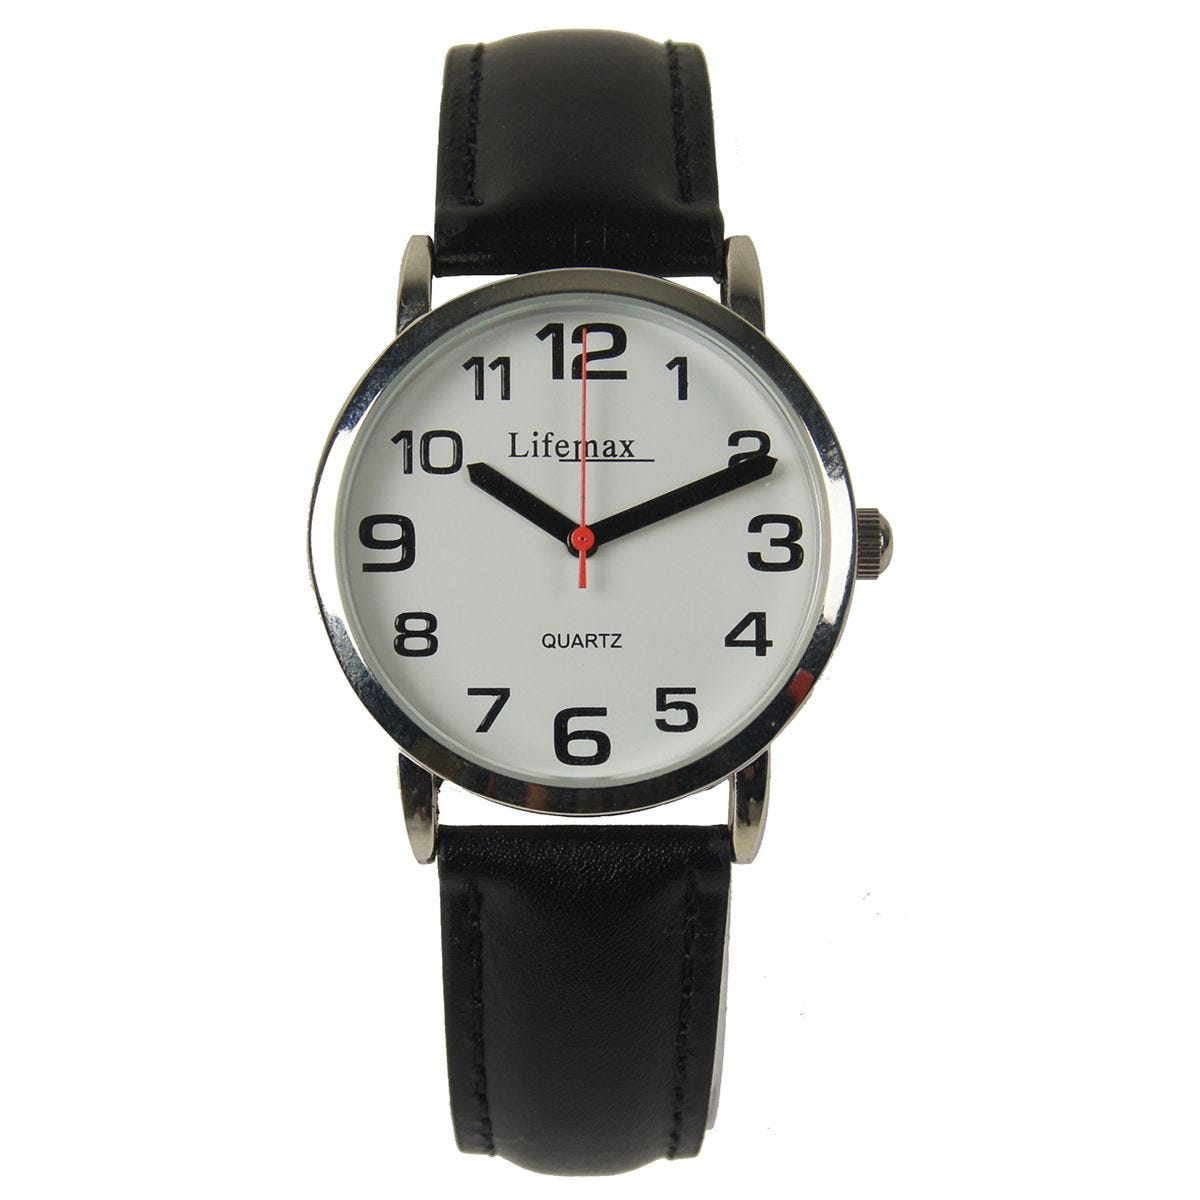 Lifemax Gents Clear Time Watch with Leather Strap